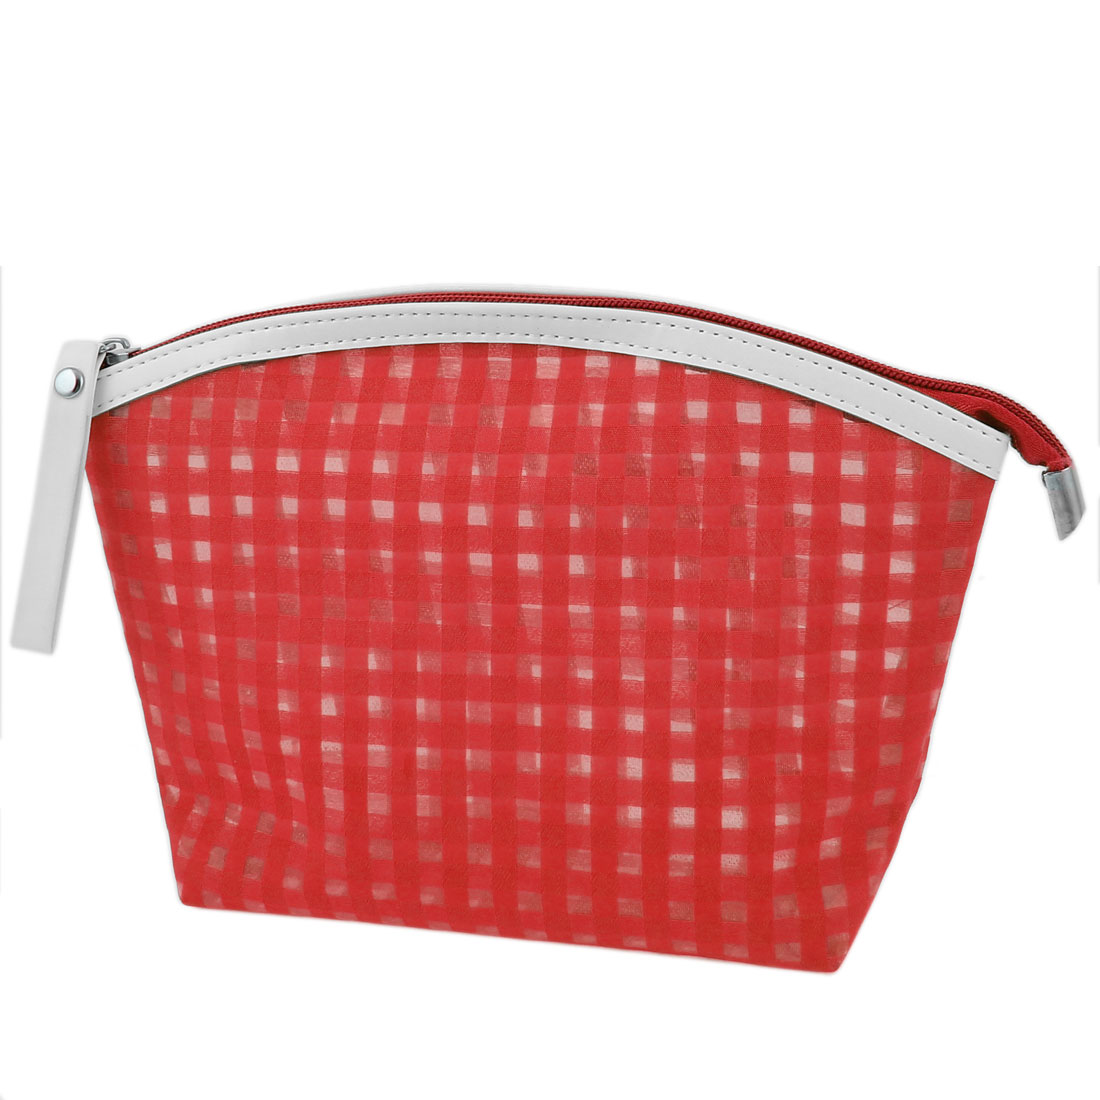 Lady Travel Portable Zipper Closure Plaids Pattern PVC Cosmetic Makeup Bag Key Change Card Holder Red